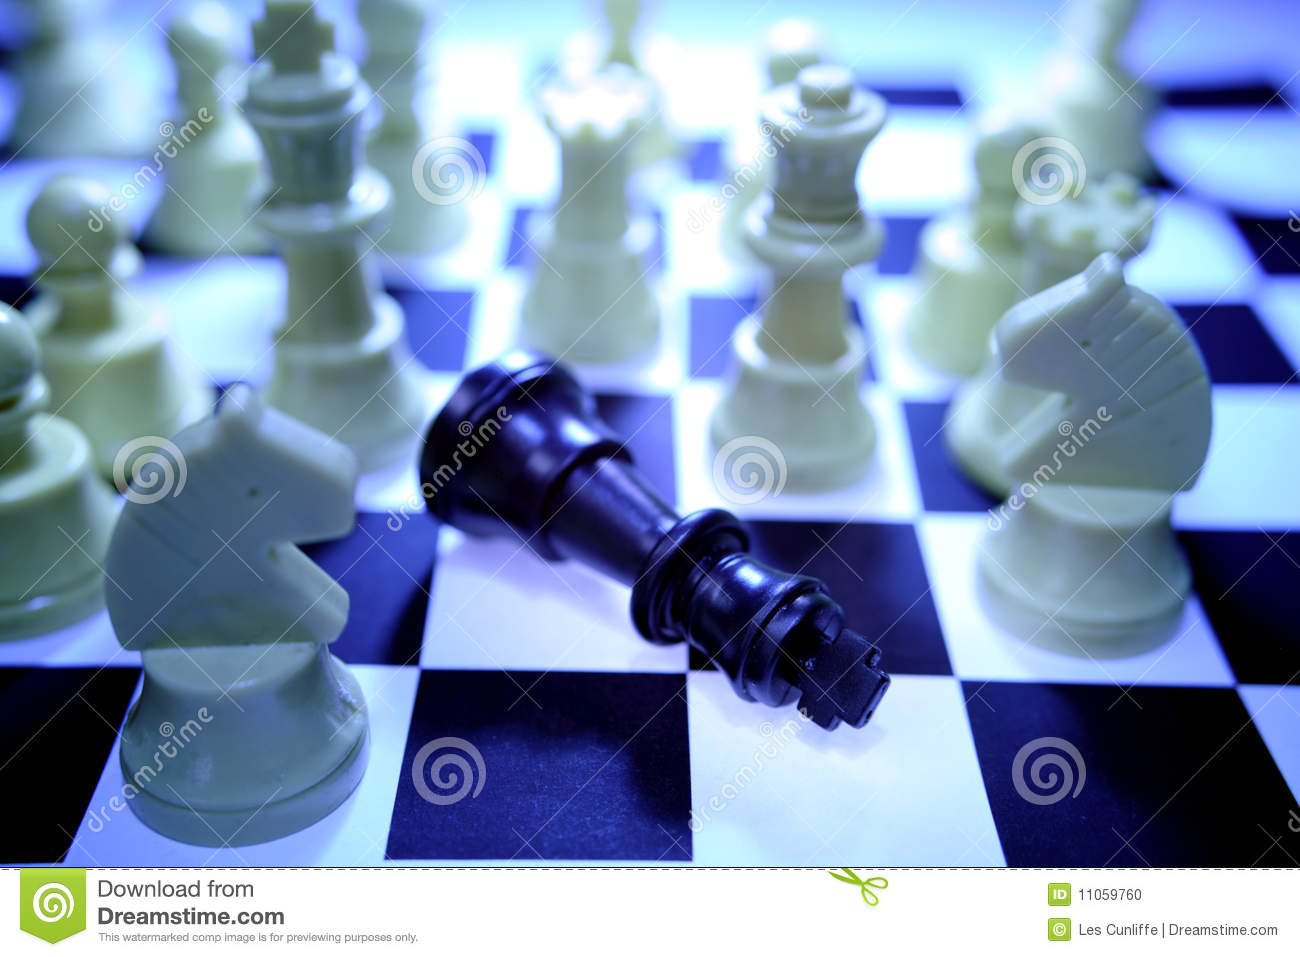 http://thumbs.dreamstime.com/z/chess-defeat-11059760.jpg